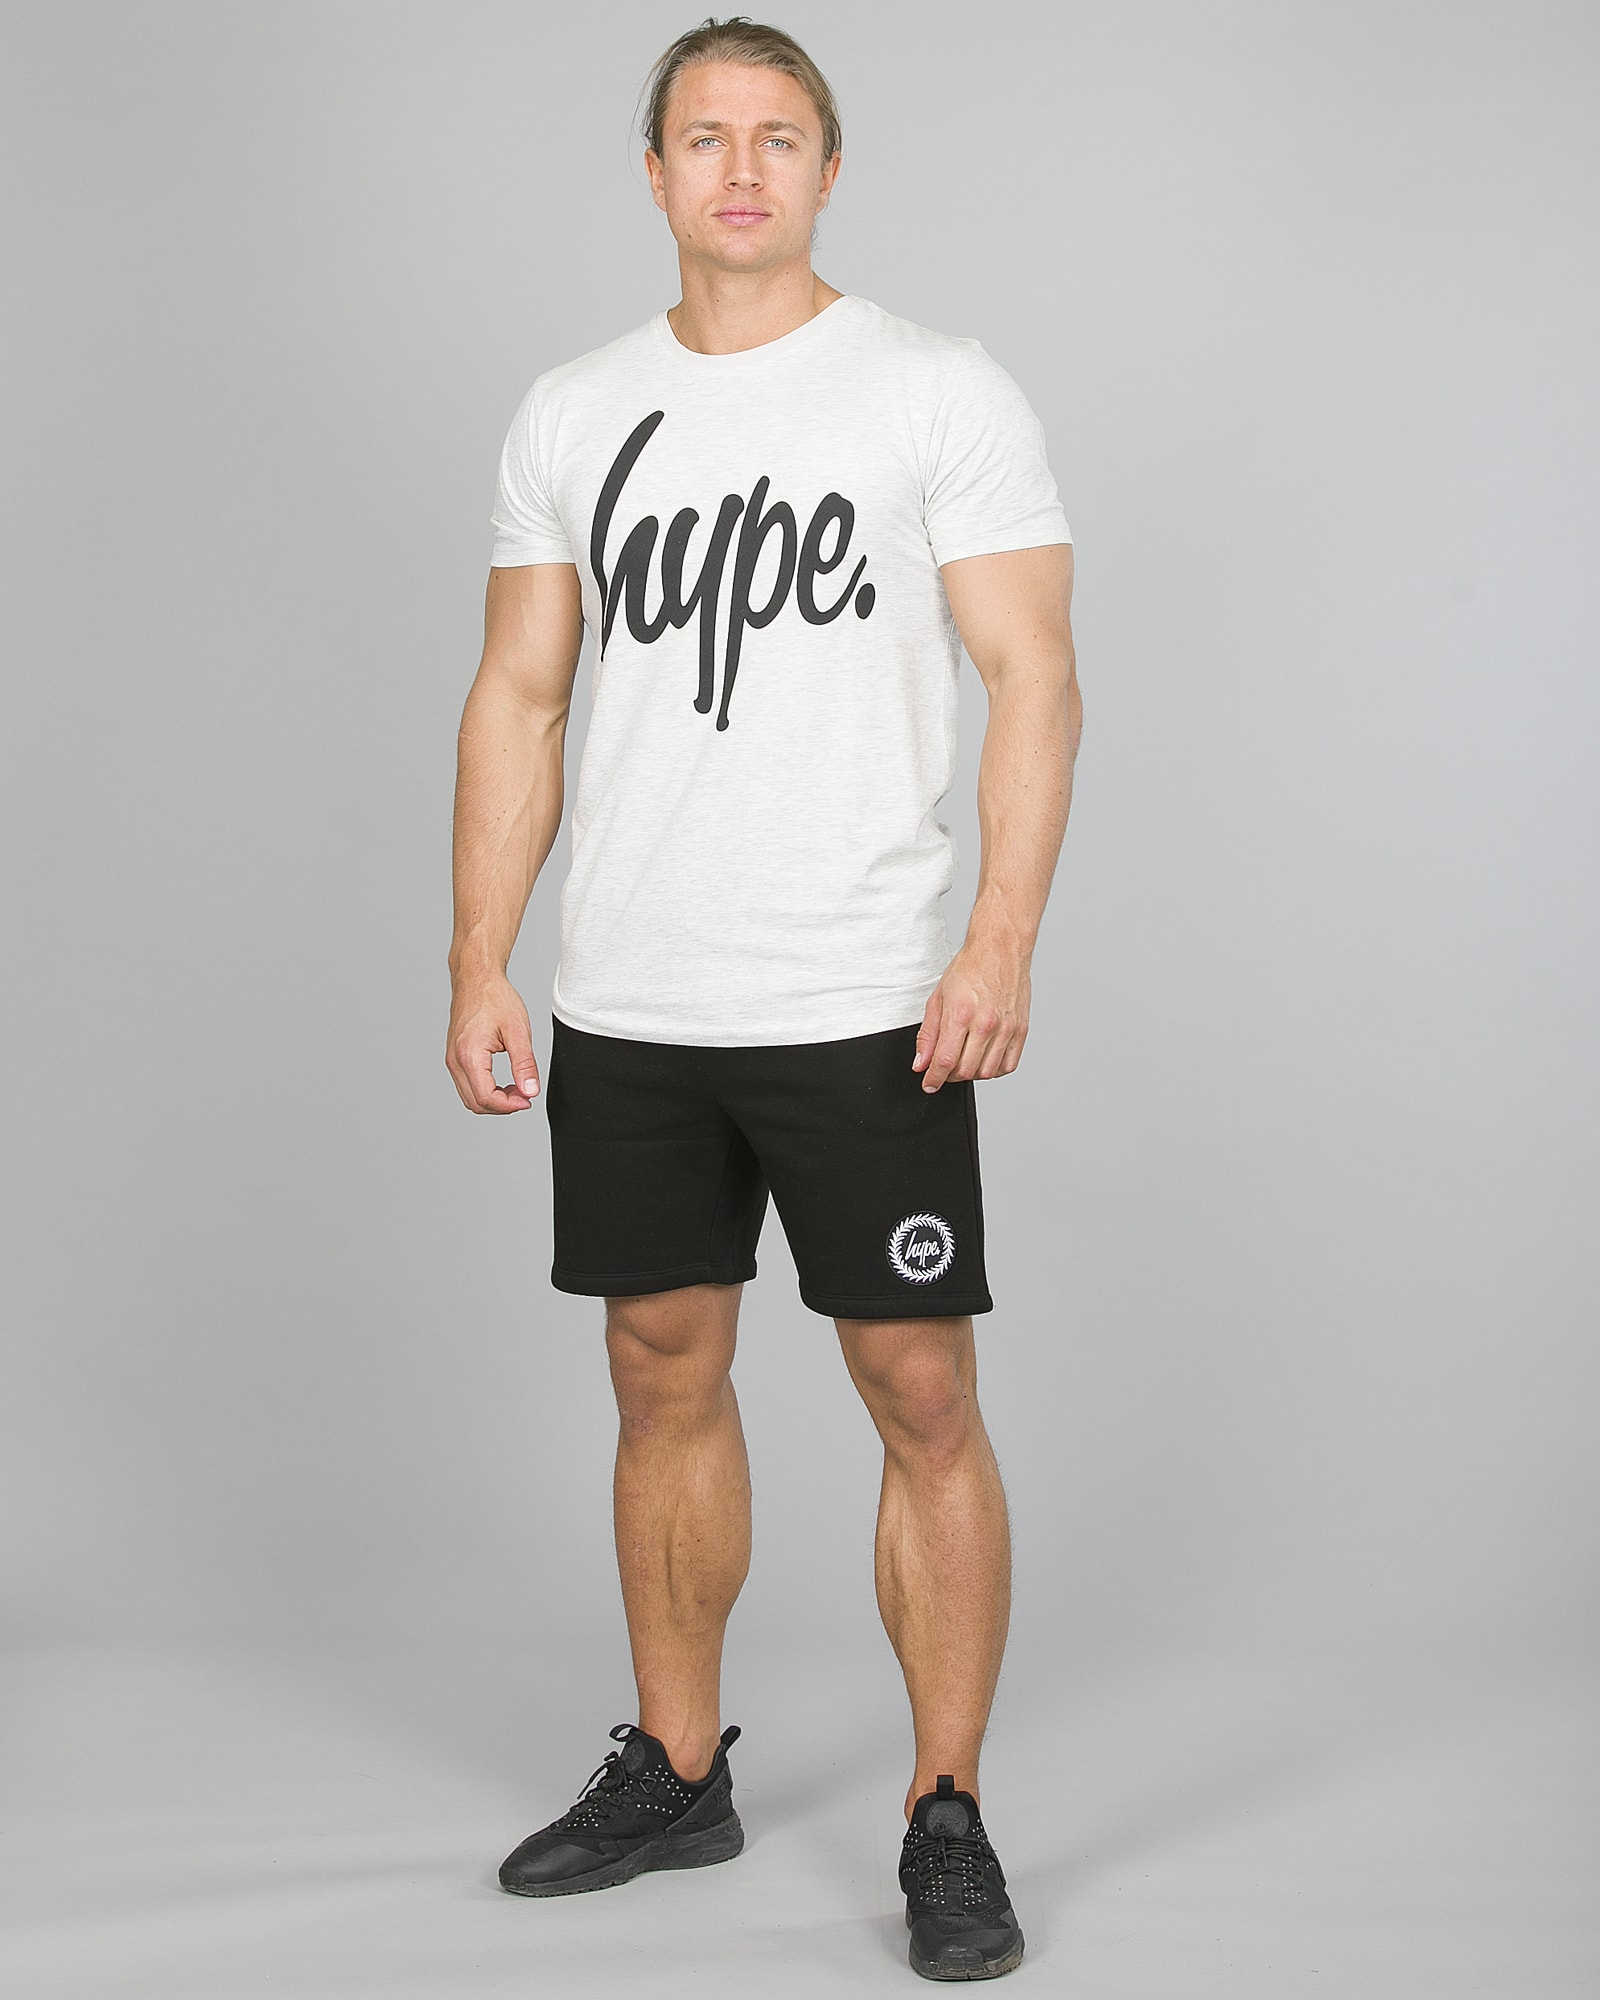 Hype Script T-Shirt Men ss18005 Charcoal and Crest Shorts ss18336b Black